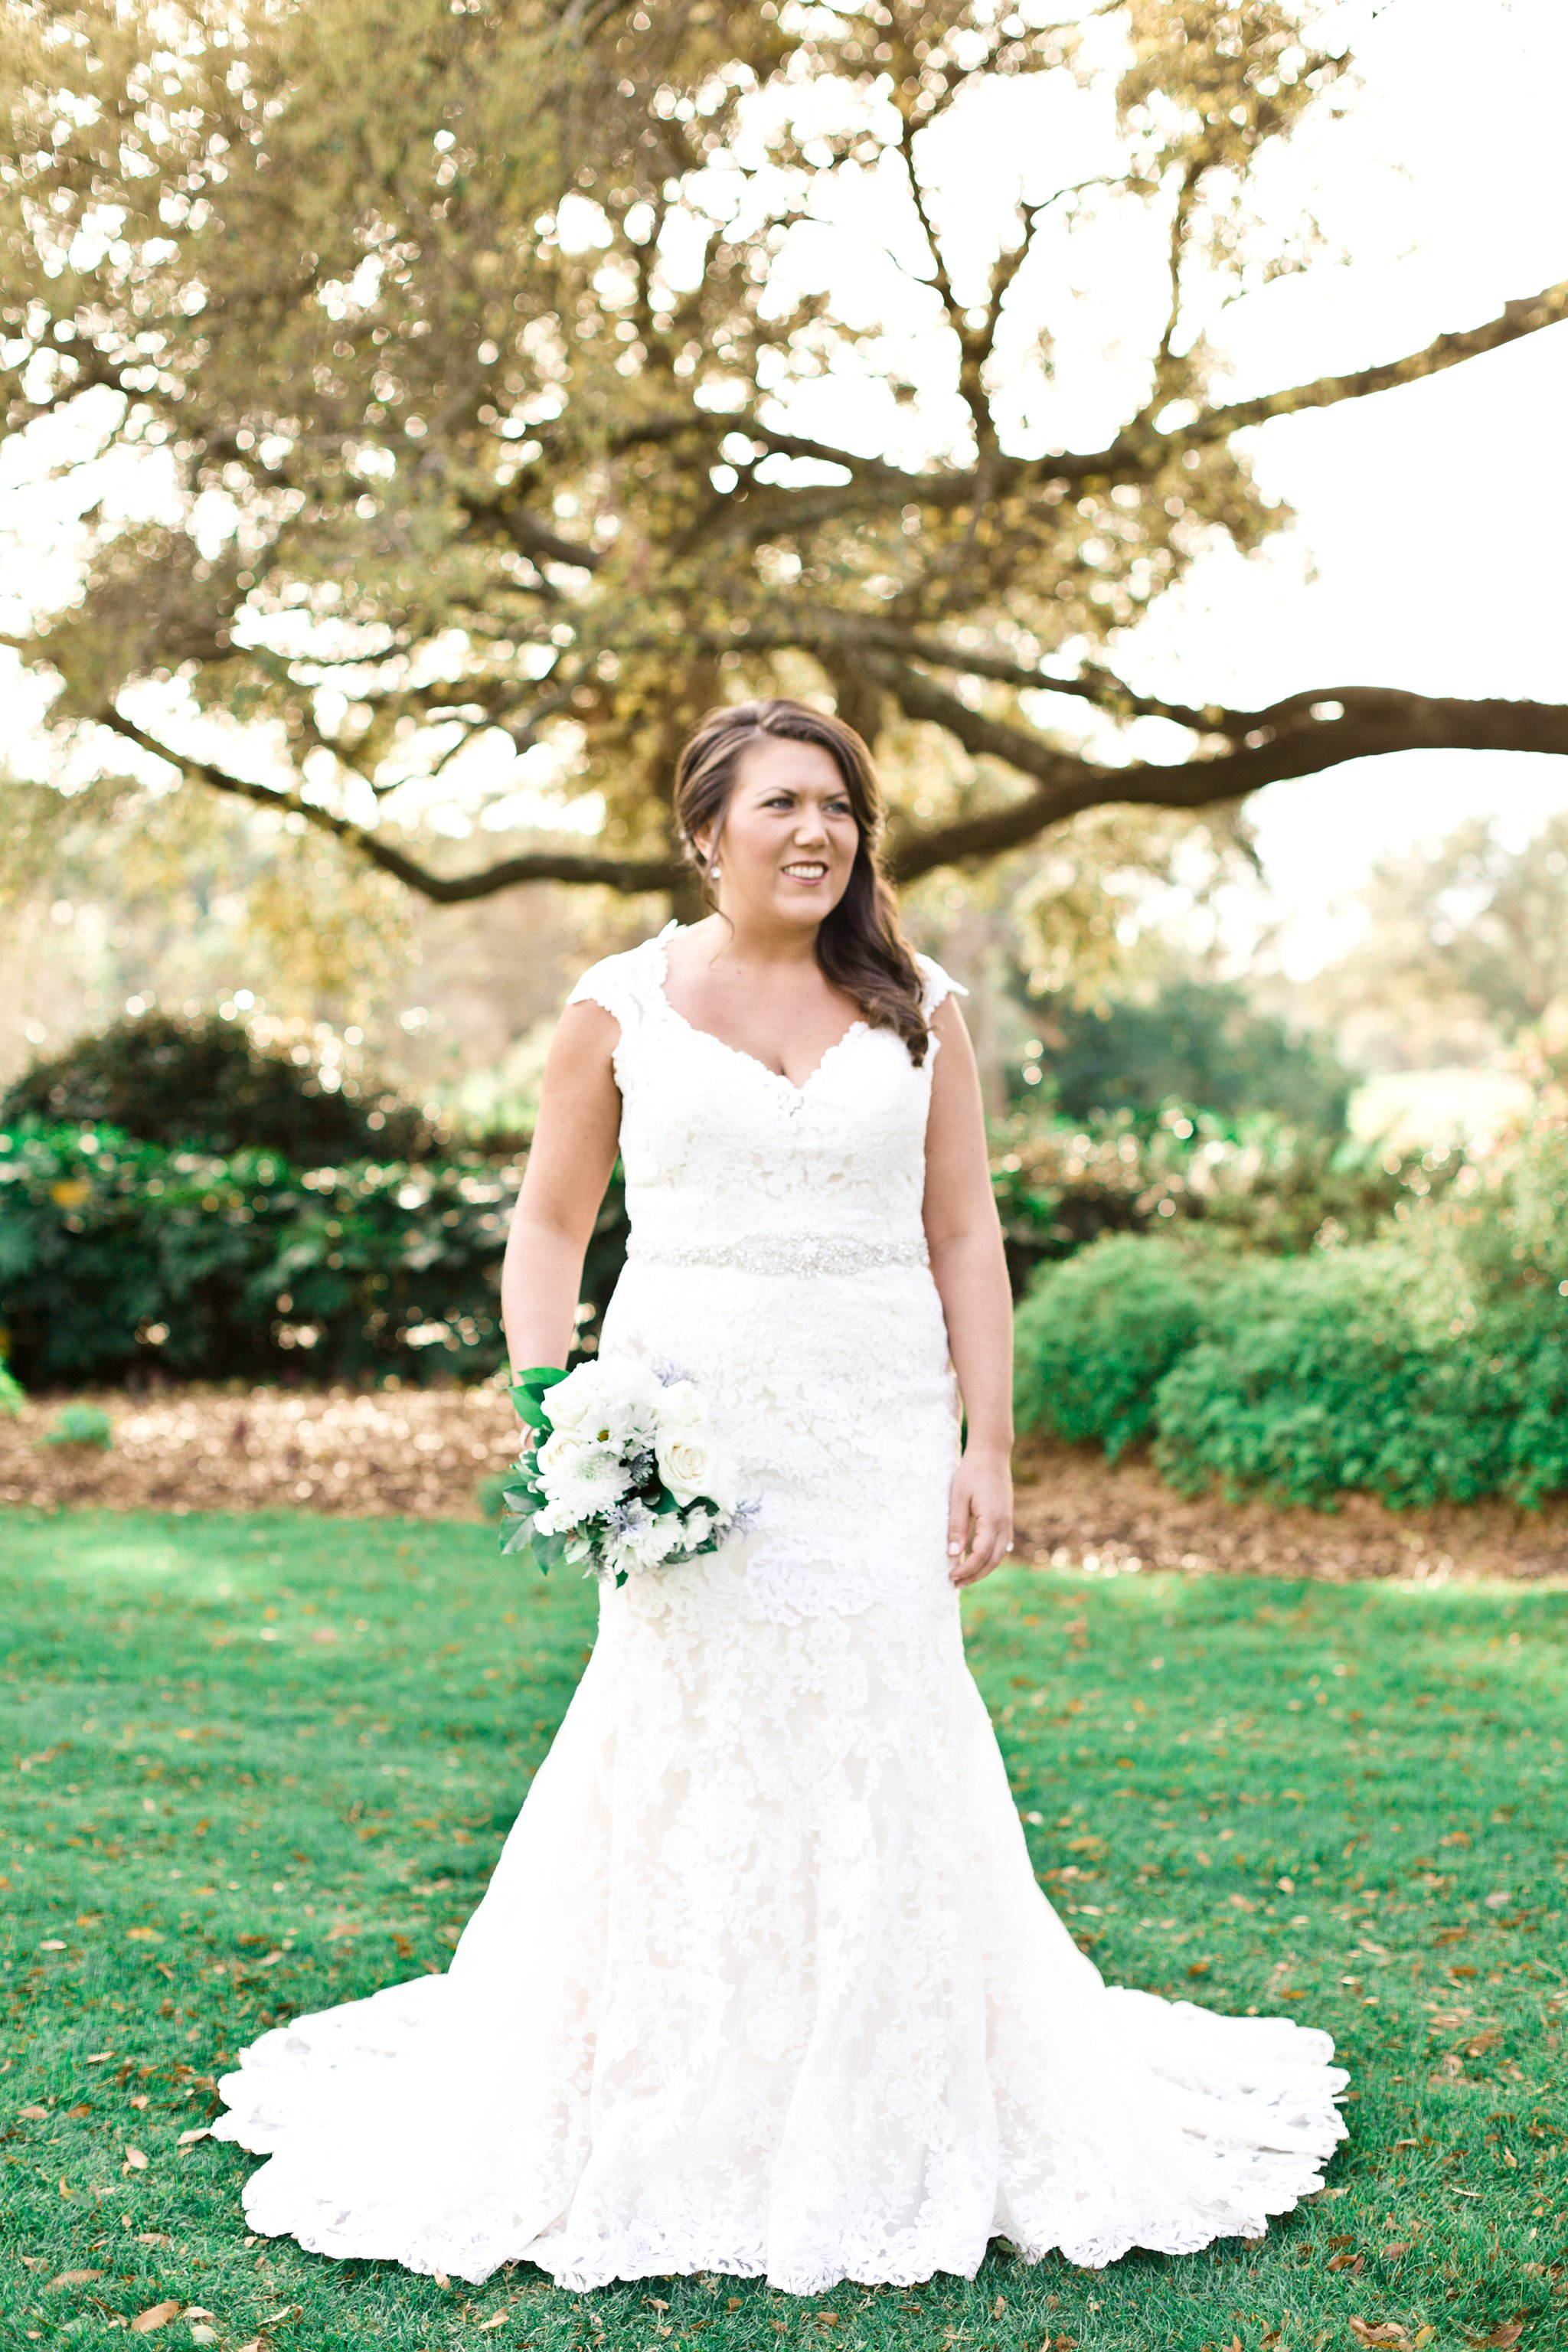 litchfield-golf-country-club-bridal-session-pawleys-island-sc-photos_0100.jpg